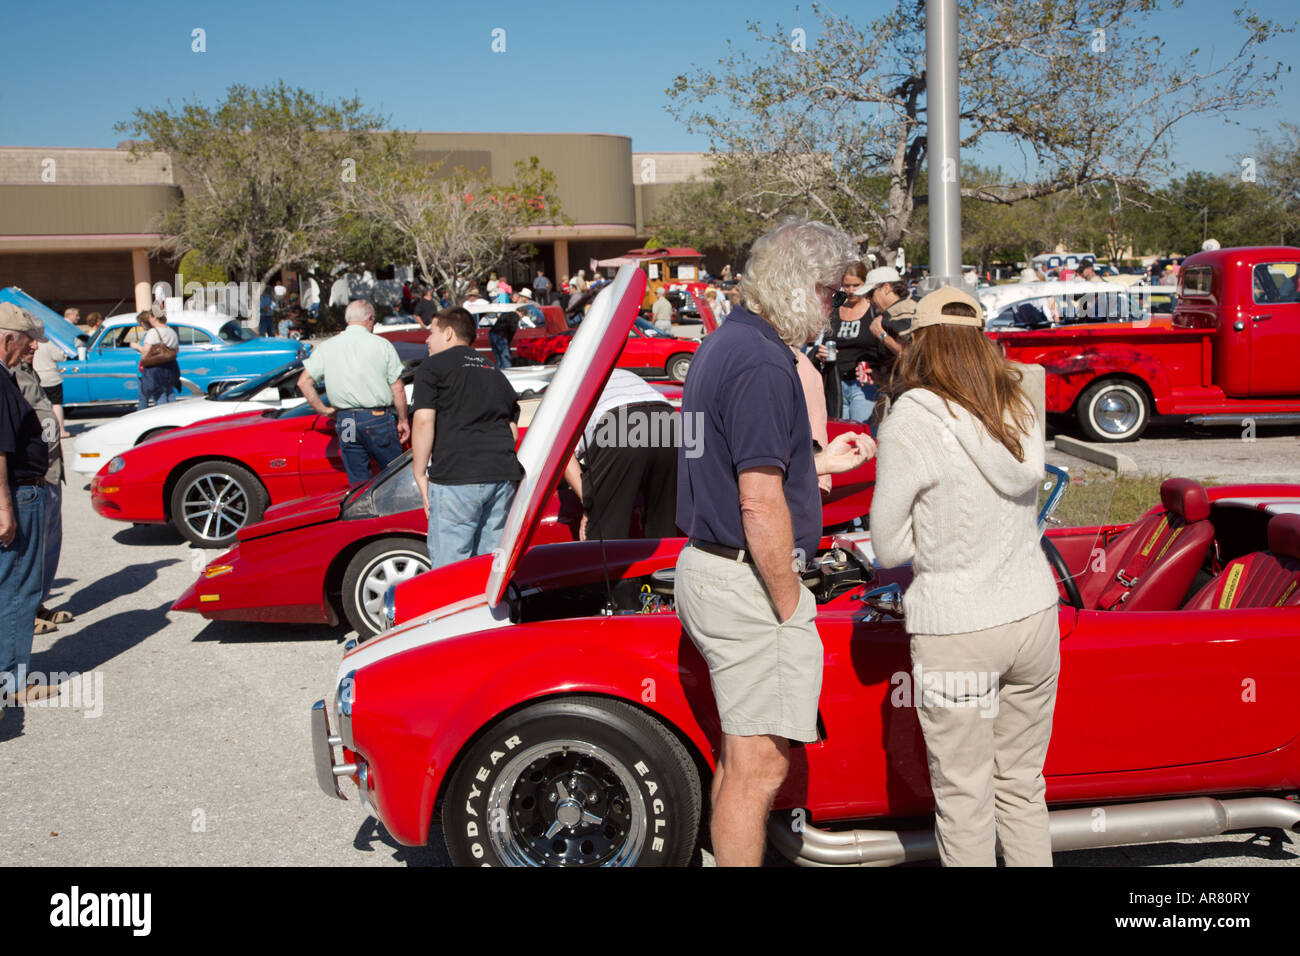 38th annual Devereaux Kaiser Collector car meet Jamunary 27 2008 held in Sarasota Florida - Stock Image